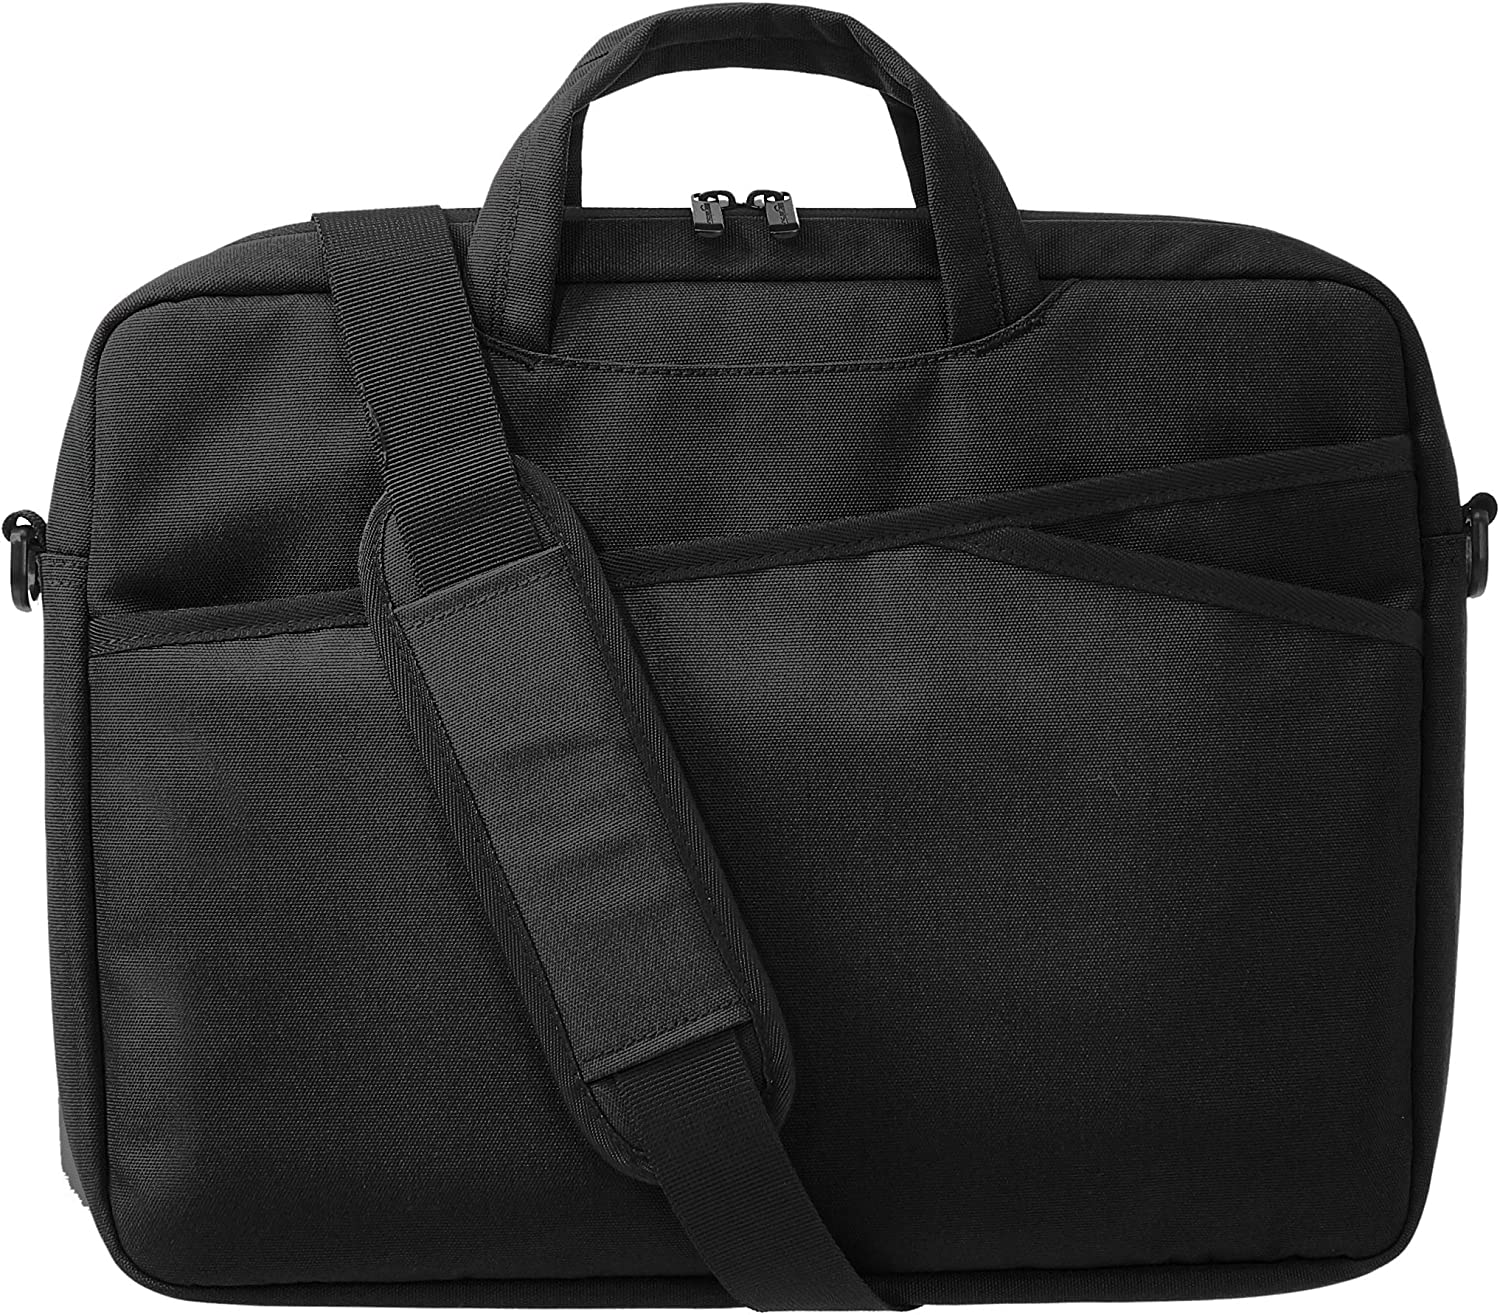 AmazonBasics Business Laptop Case Bag - 15-Inch, Black